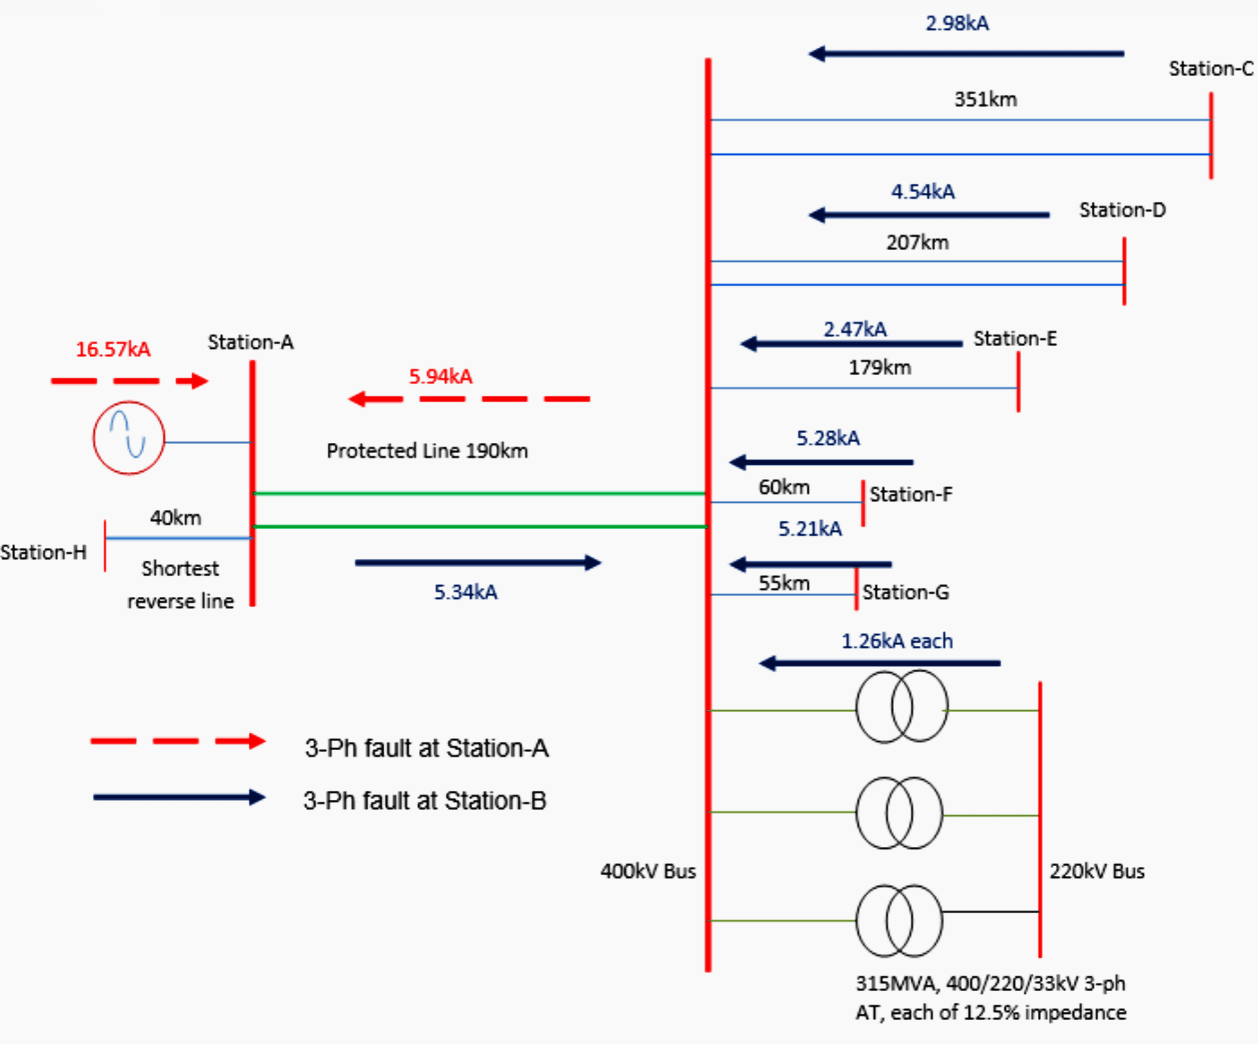 hight resolution of network line diagram of the protected line